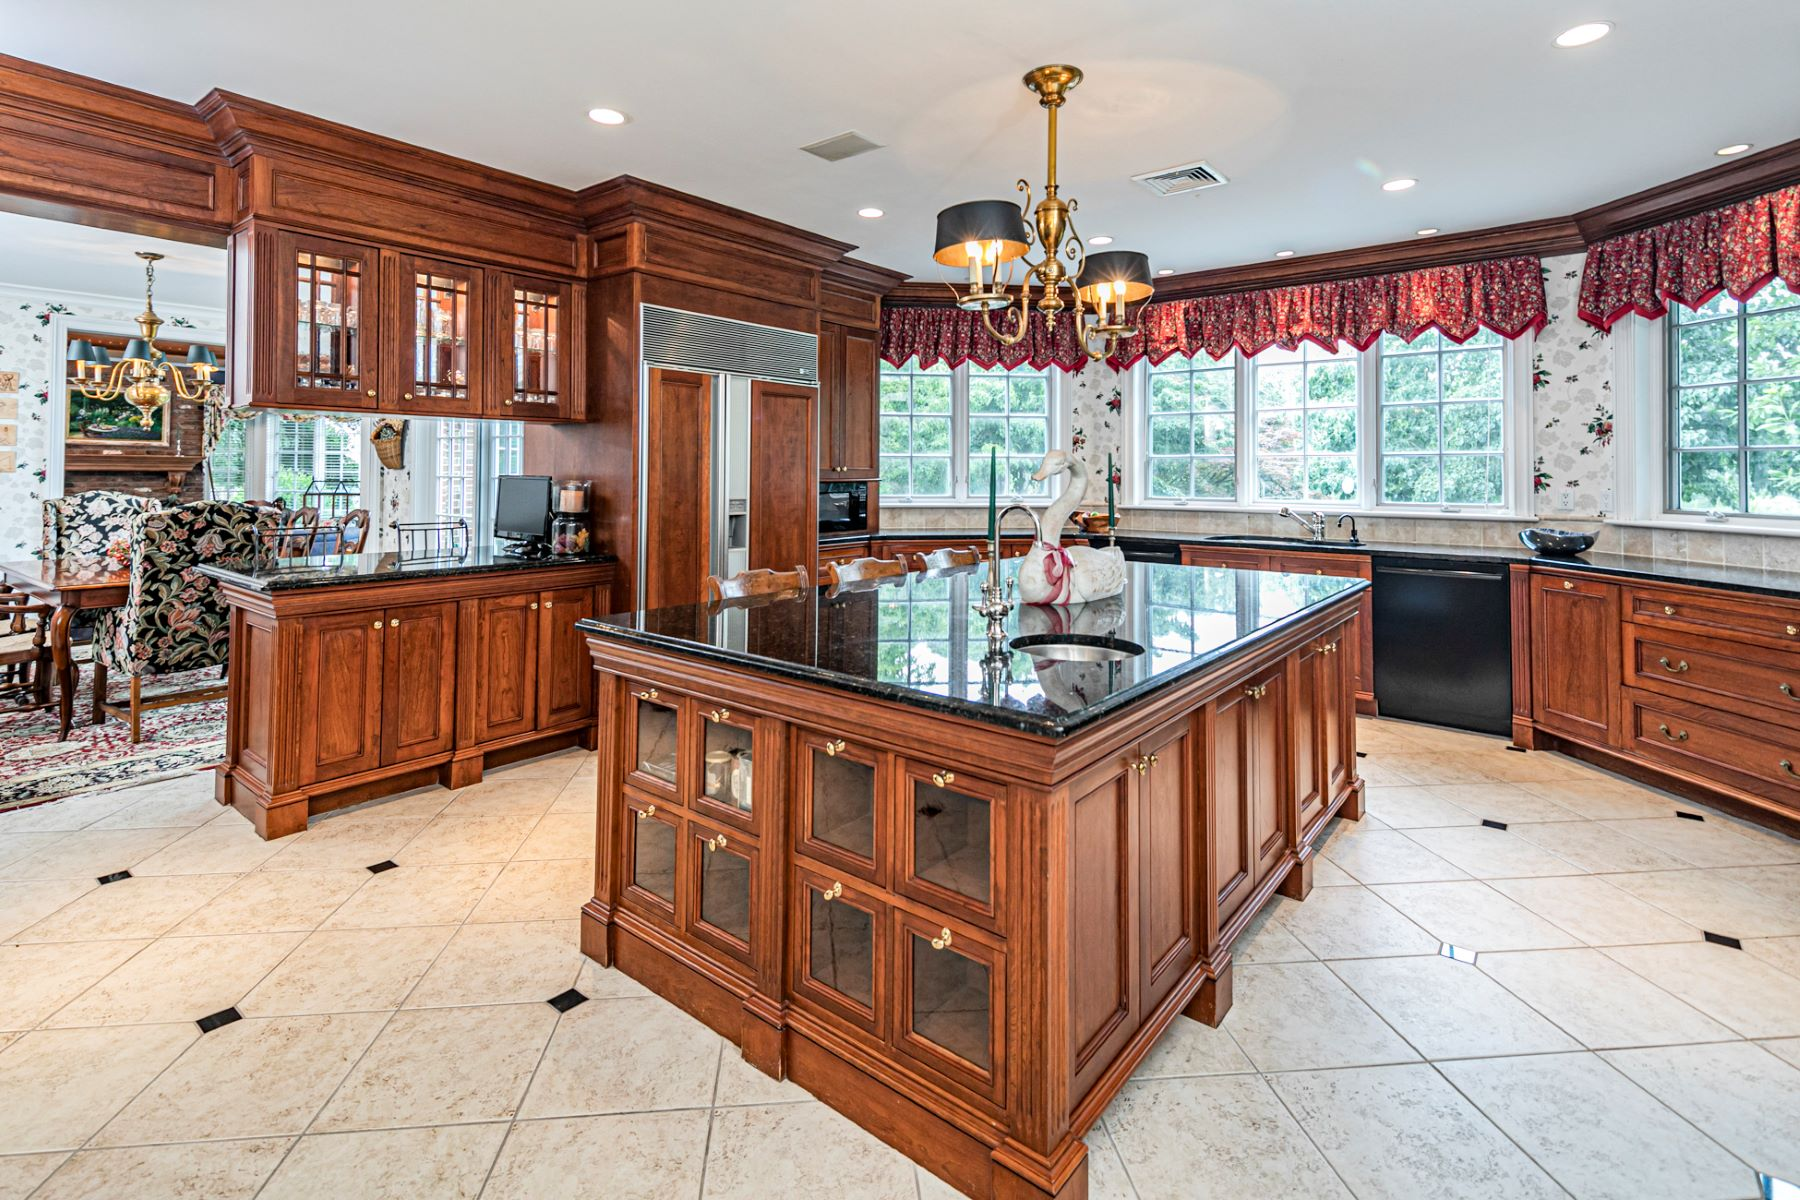 Additional photo for property listing at Private Compound with Every Amenity Imaginable 82 Aunt Molly Road, Hopewell, New Jersey 08525 Förenta staterna